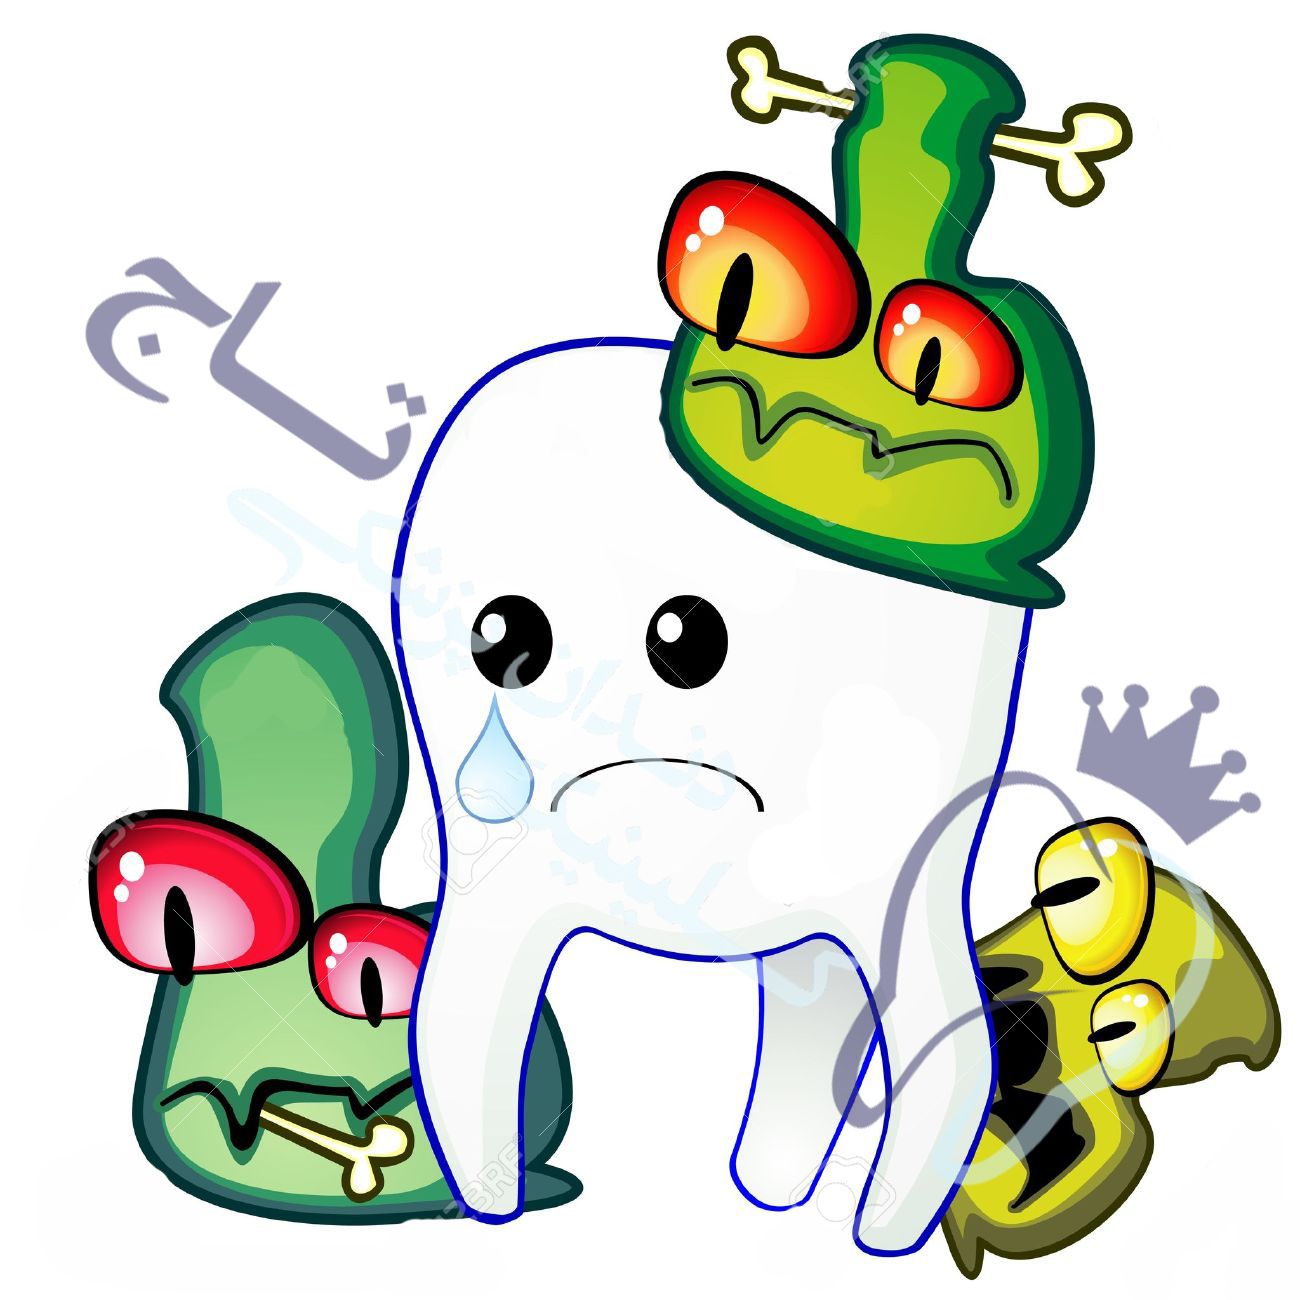 11651395 poor sad tooth is attacked by germs of caries - برنامه مراقبت از سلامتی دهان و دندان